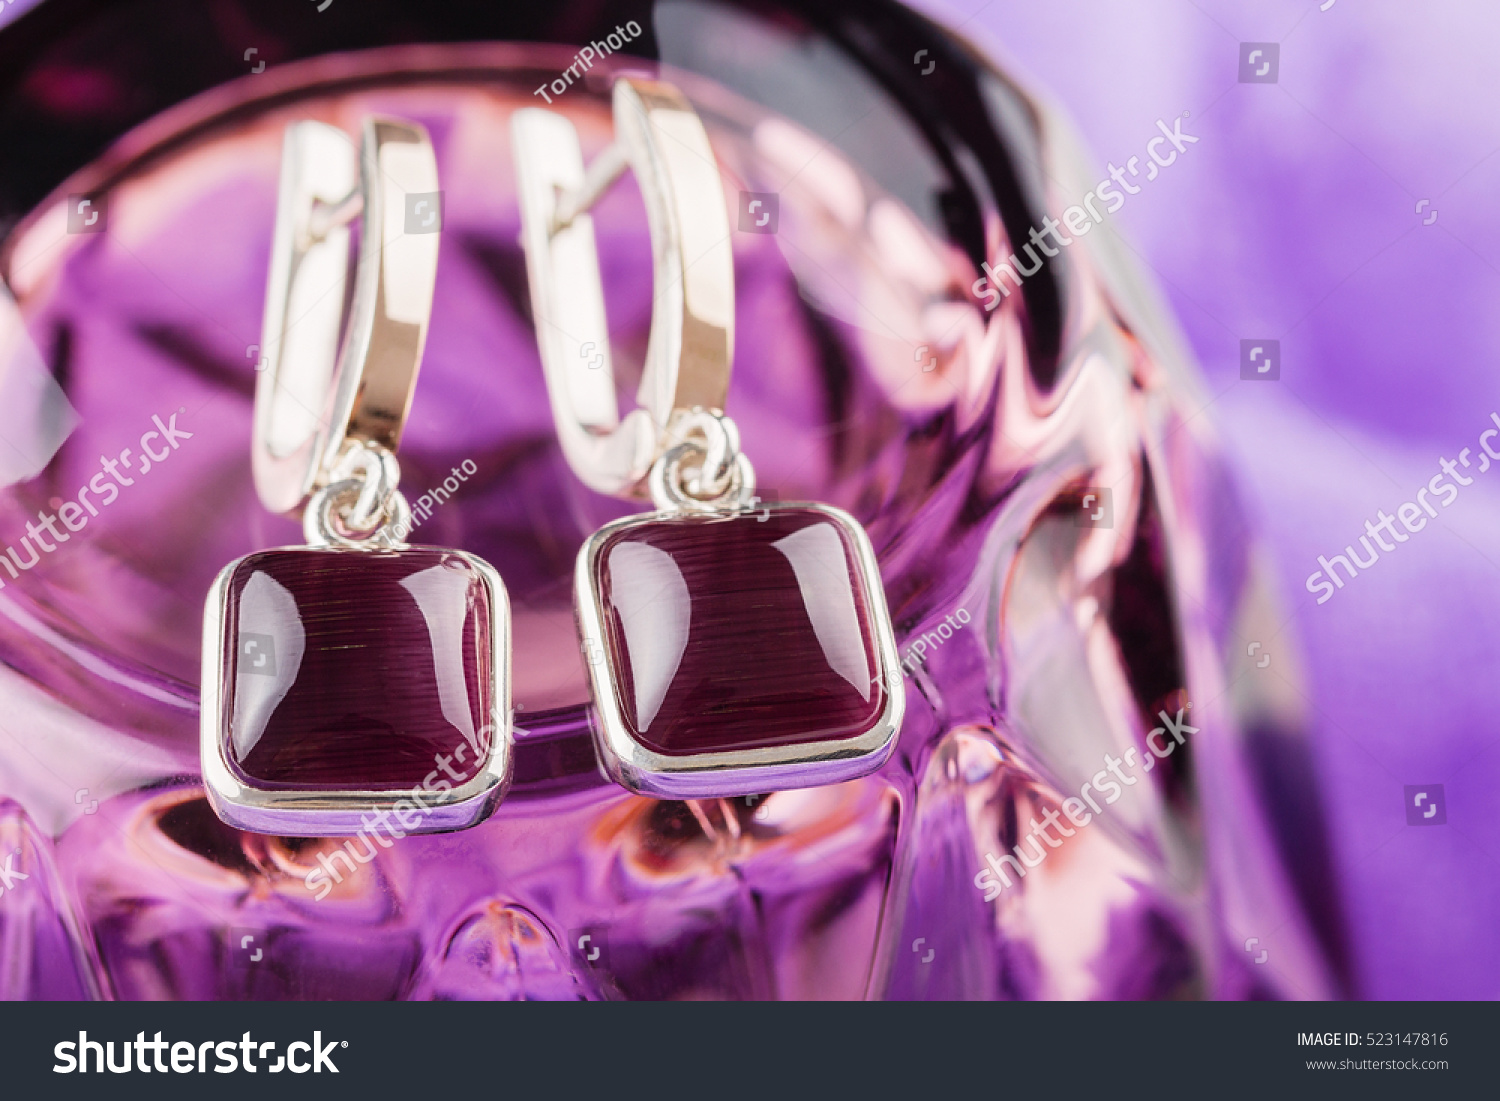 https://www.shutterstock.com/pic-523147816/stock-photo-gold-ring-square-shaped-with-purple-gemstones-on-violet-background.html